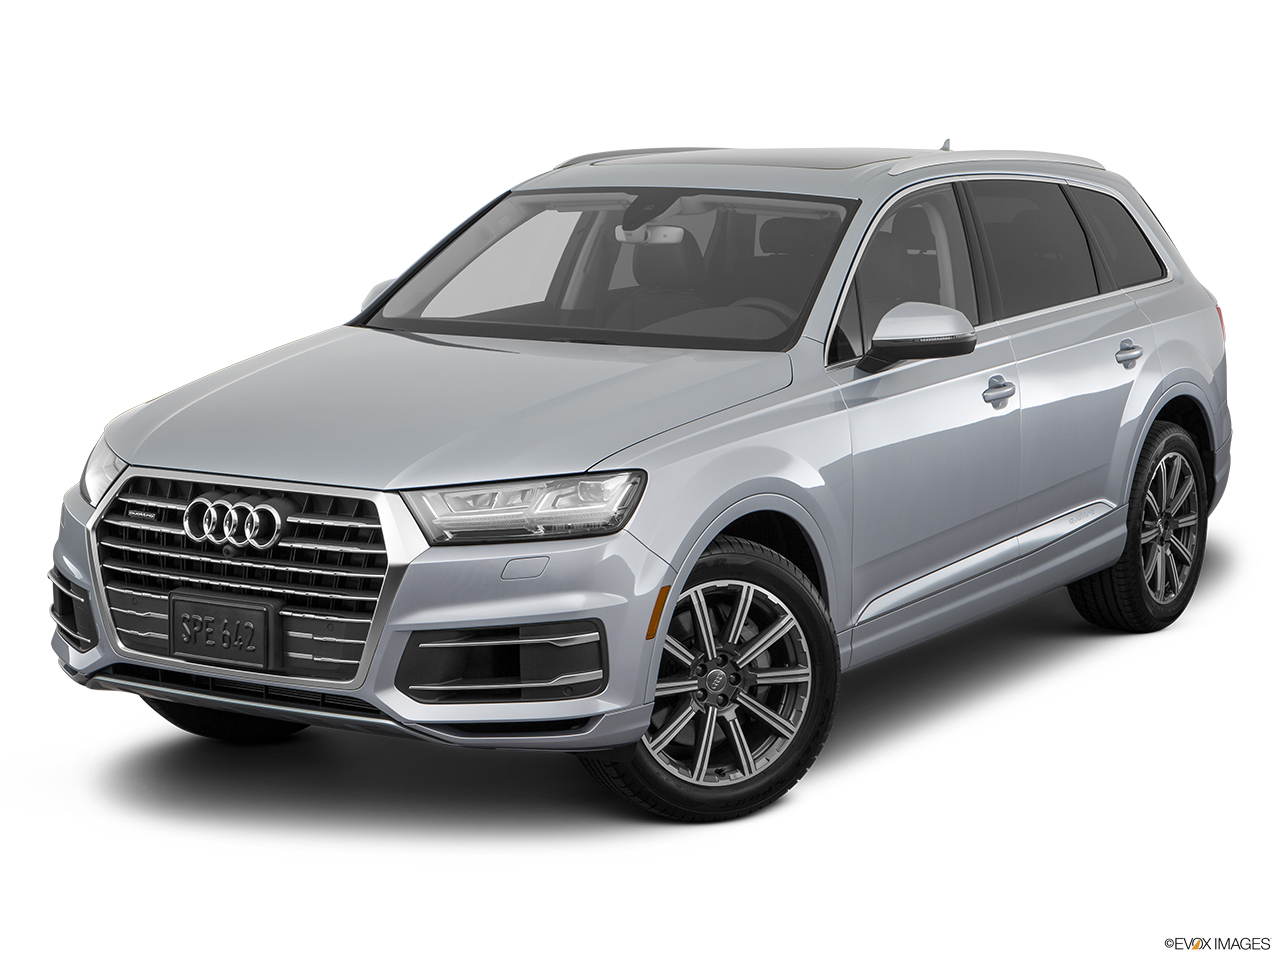 Audi truck q7 2017 s line price in uae